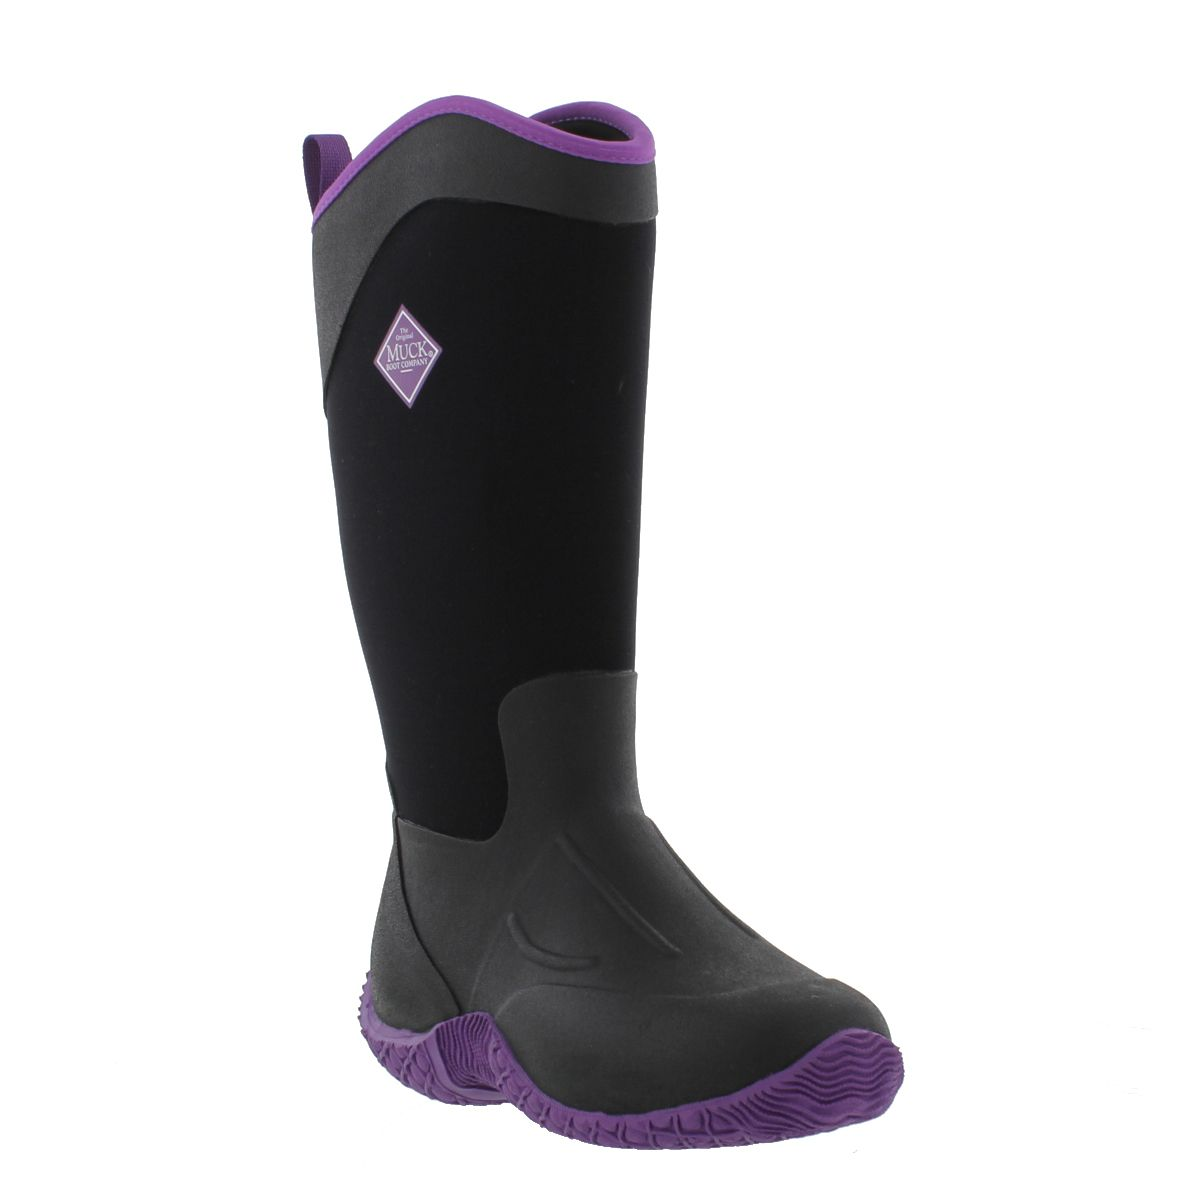 Great Holiday Gifts & More: Muck Boots for Sale at DICK'S. Check out all the amazing ways to save big this holiday season when you shop DICK'S Sporting Goods holiday internetmovie.ml are hundreds of great gifts for every fan and athlete on your list!